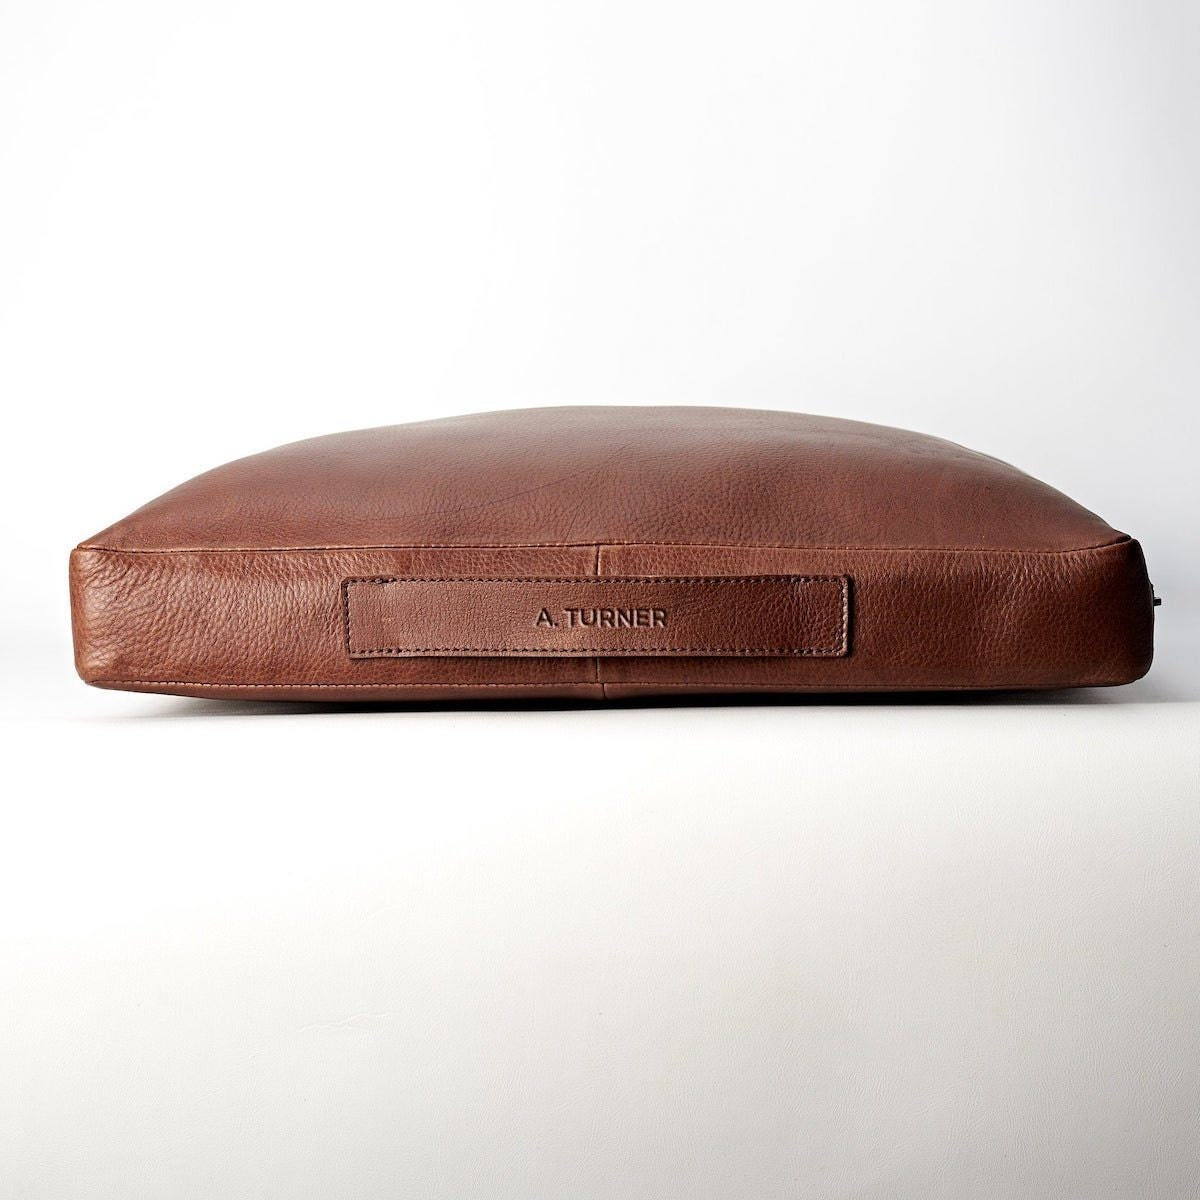 Personalized leather meditation cushion from Capra Leather